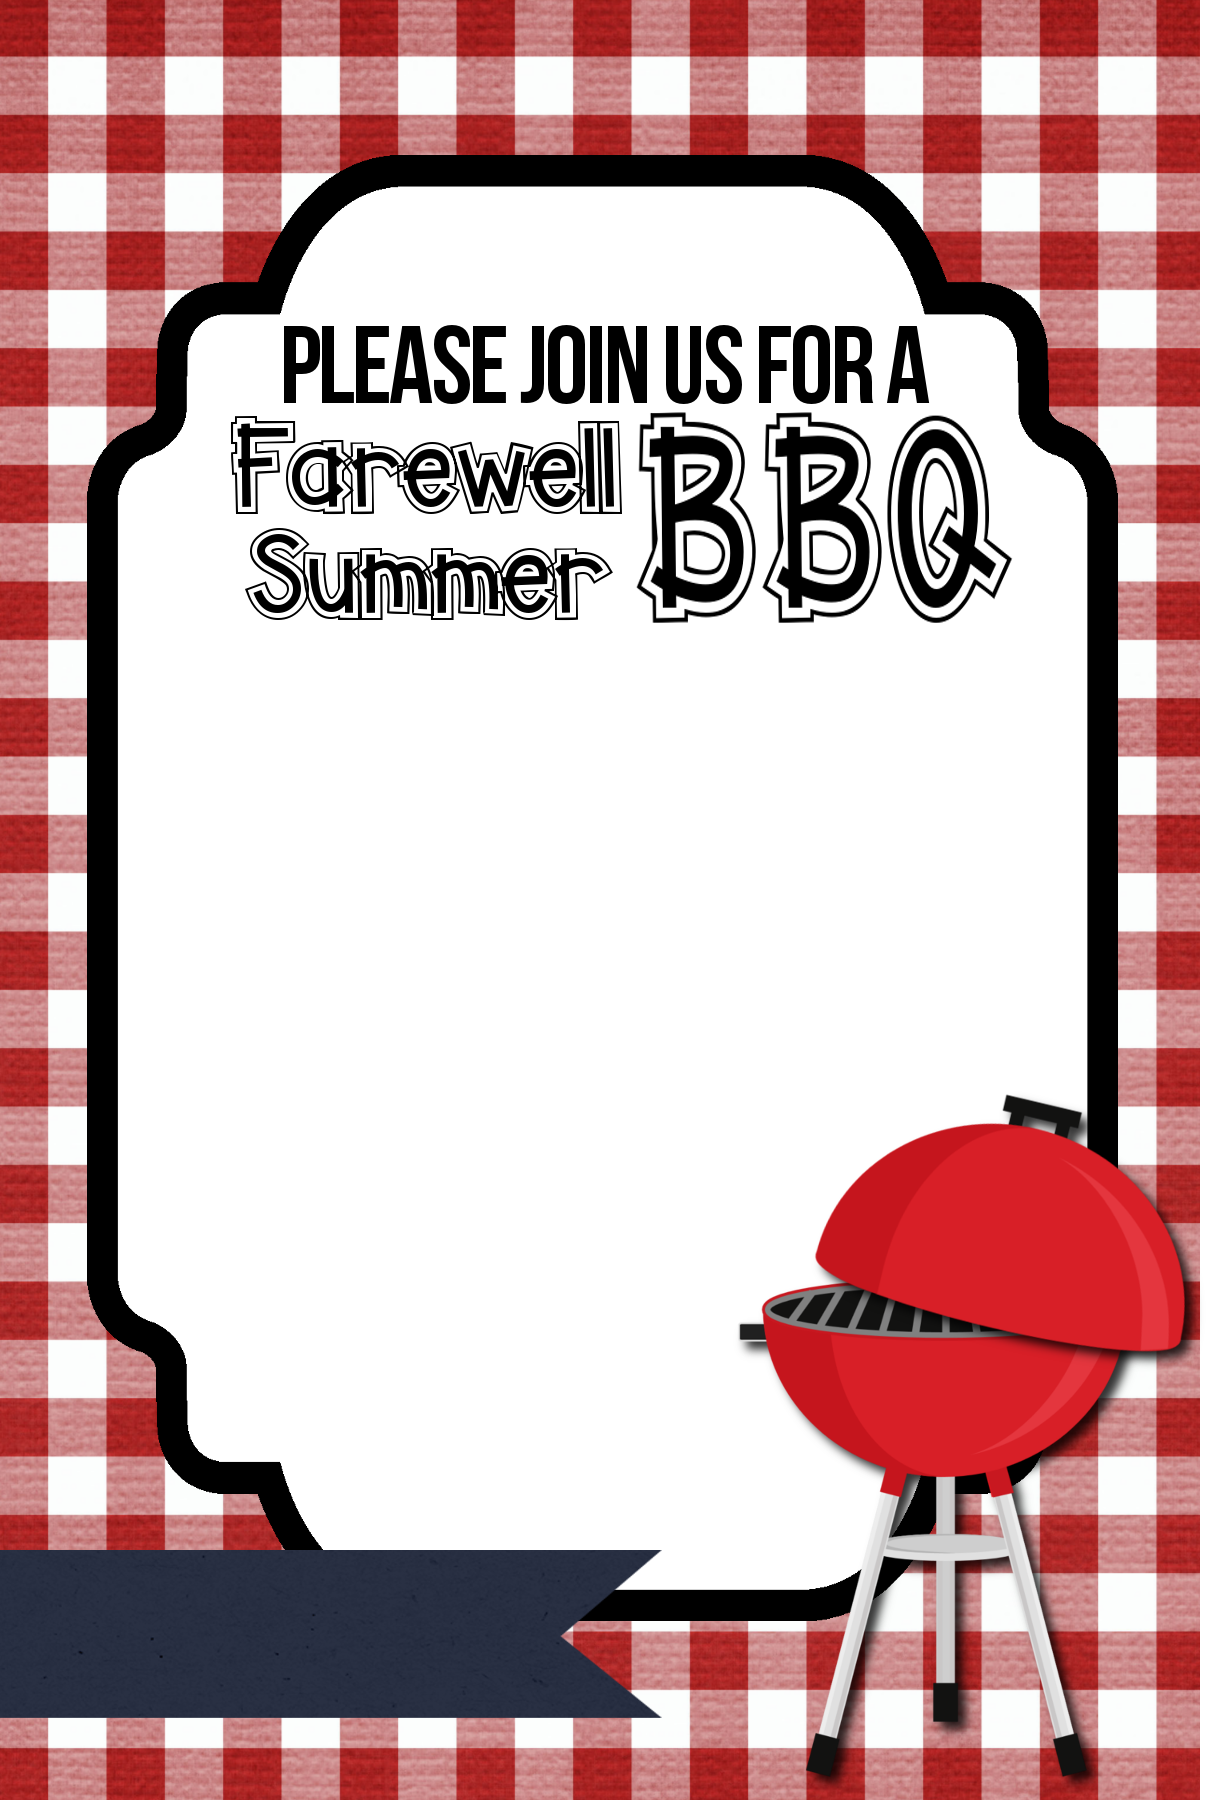 Barbecue clipart end summer Free Summer Invitations BBQ